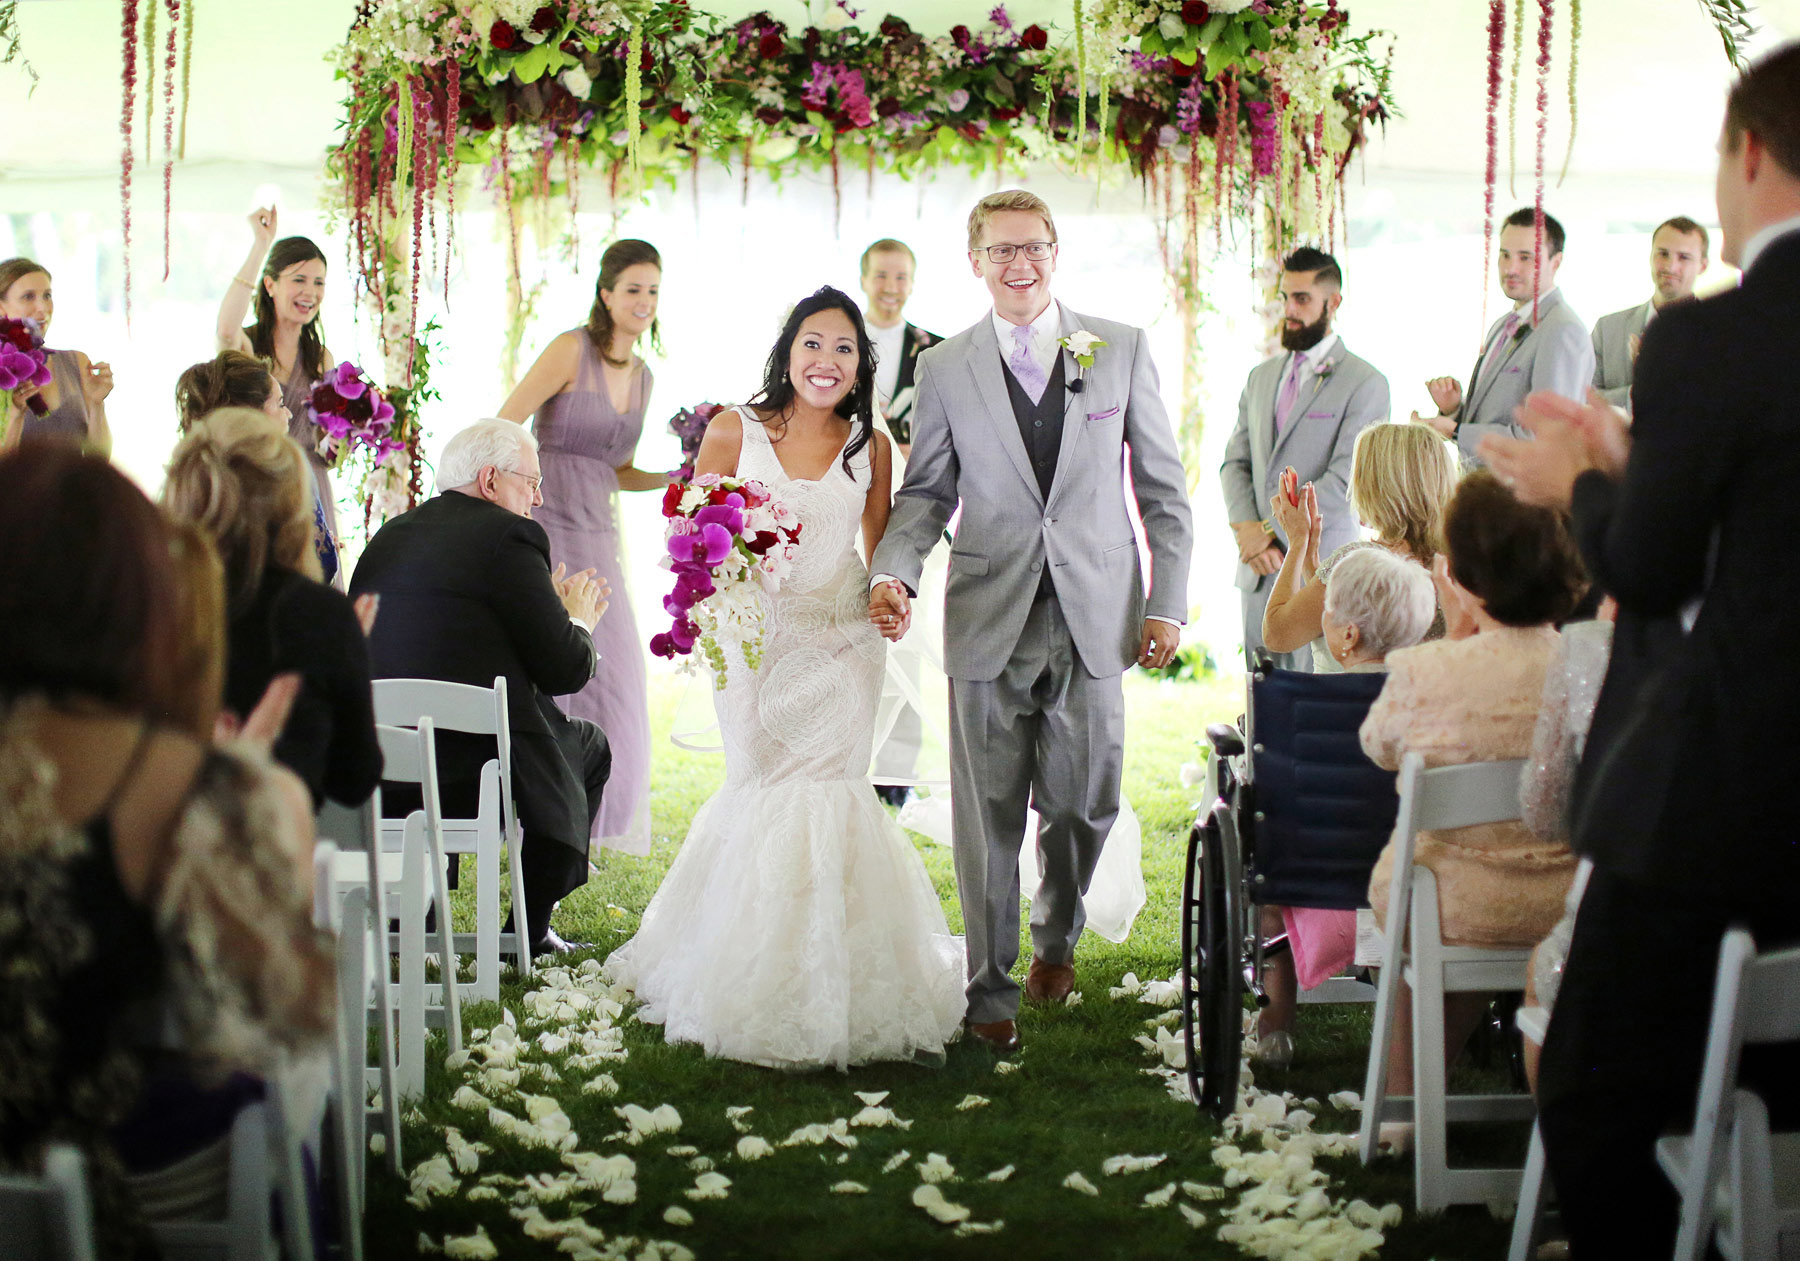 12-Minneapolis-Minnesota-Wedding-Photography-by-Vick-Photography-Lafayette-Country-Club-Outdoor-Ceremony-Daphne-&-Austin.jpg